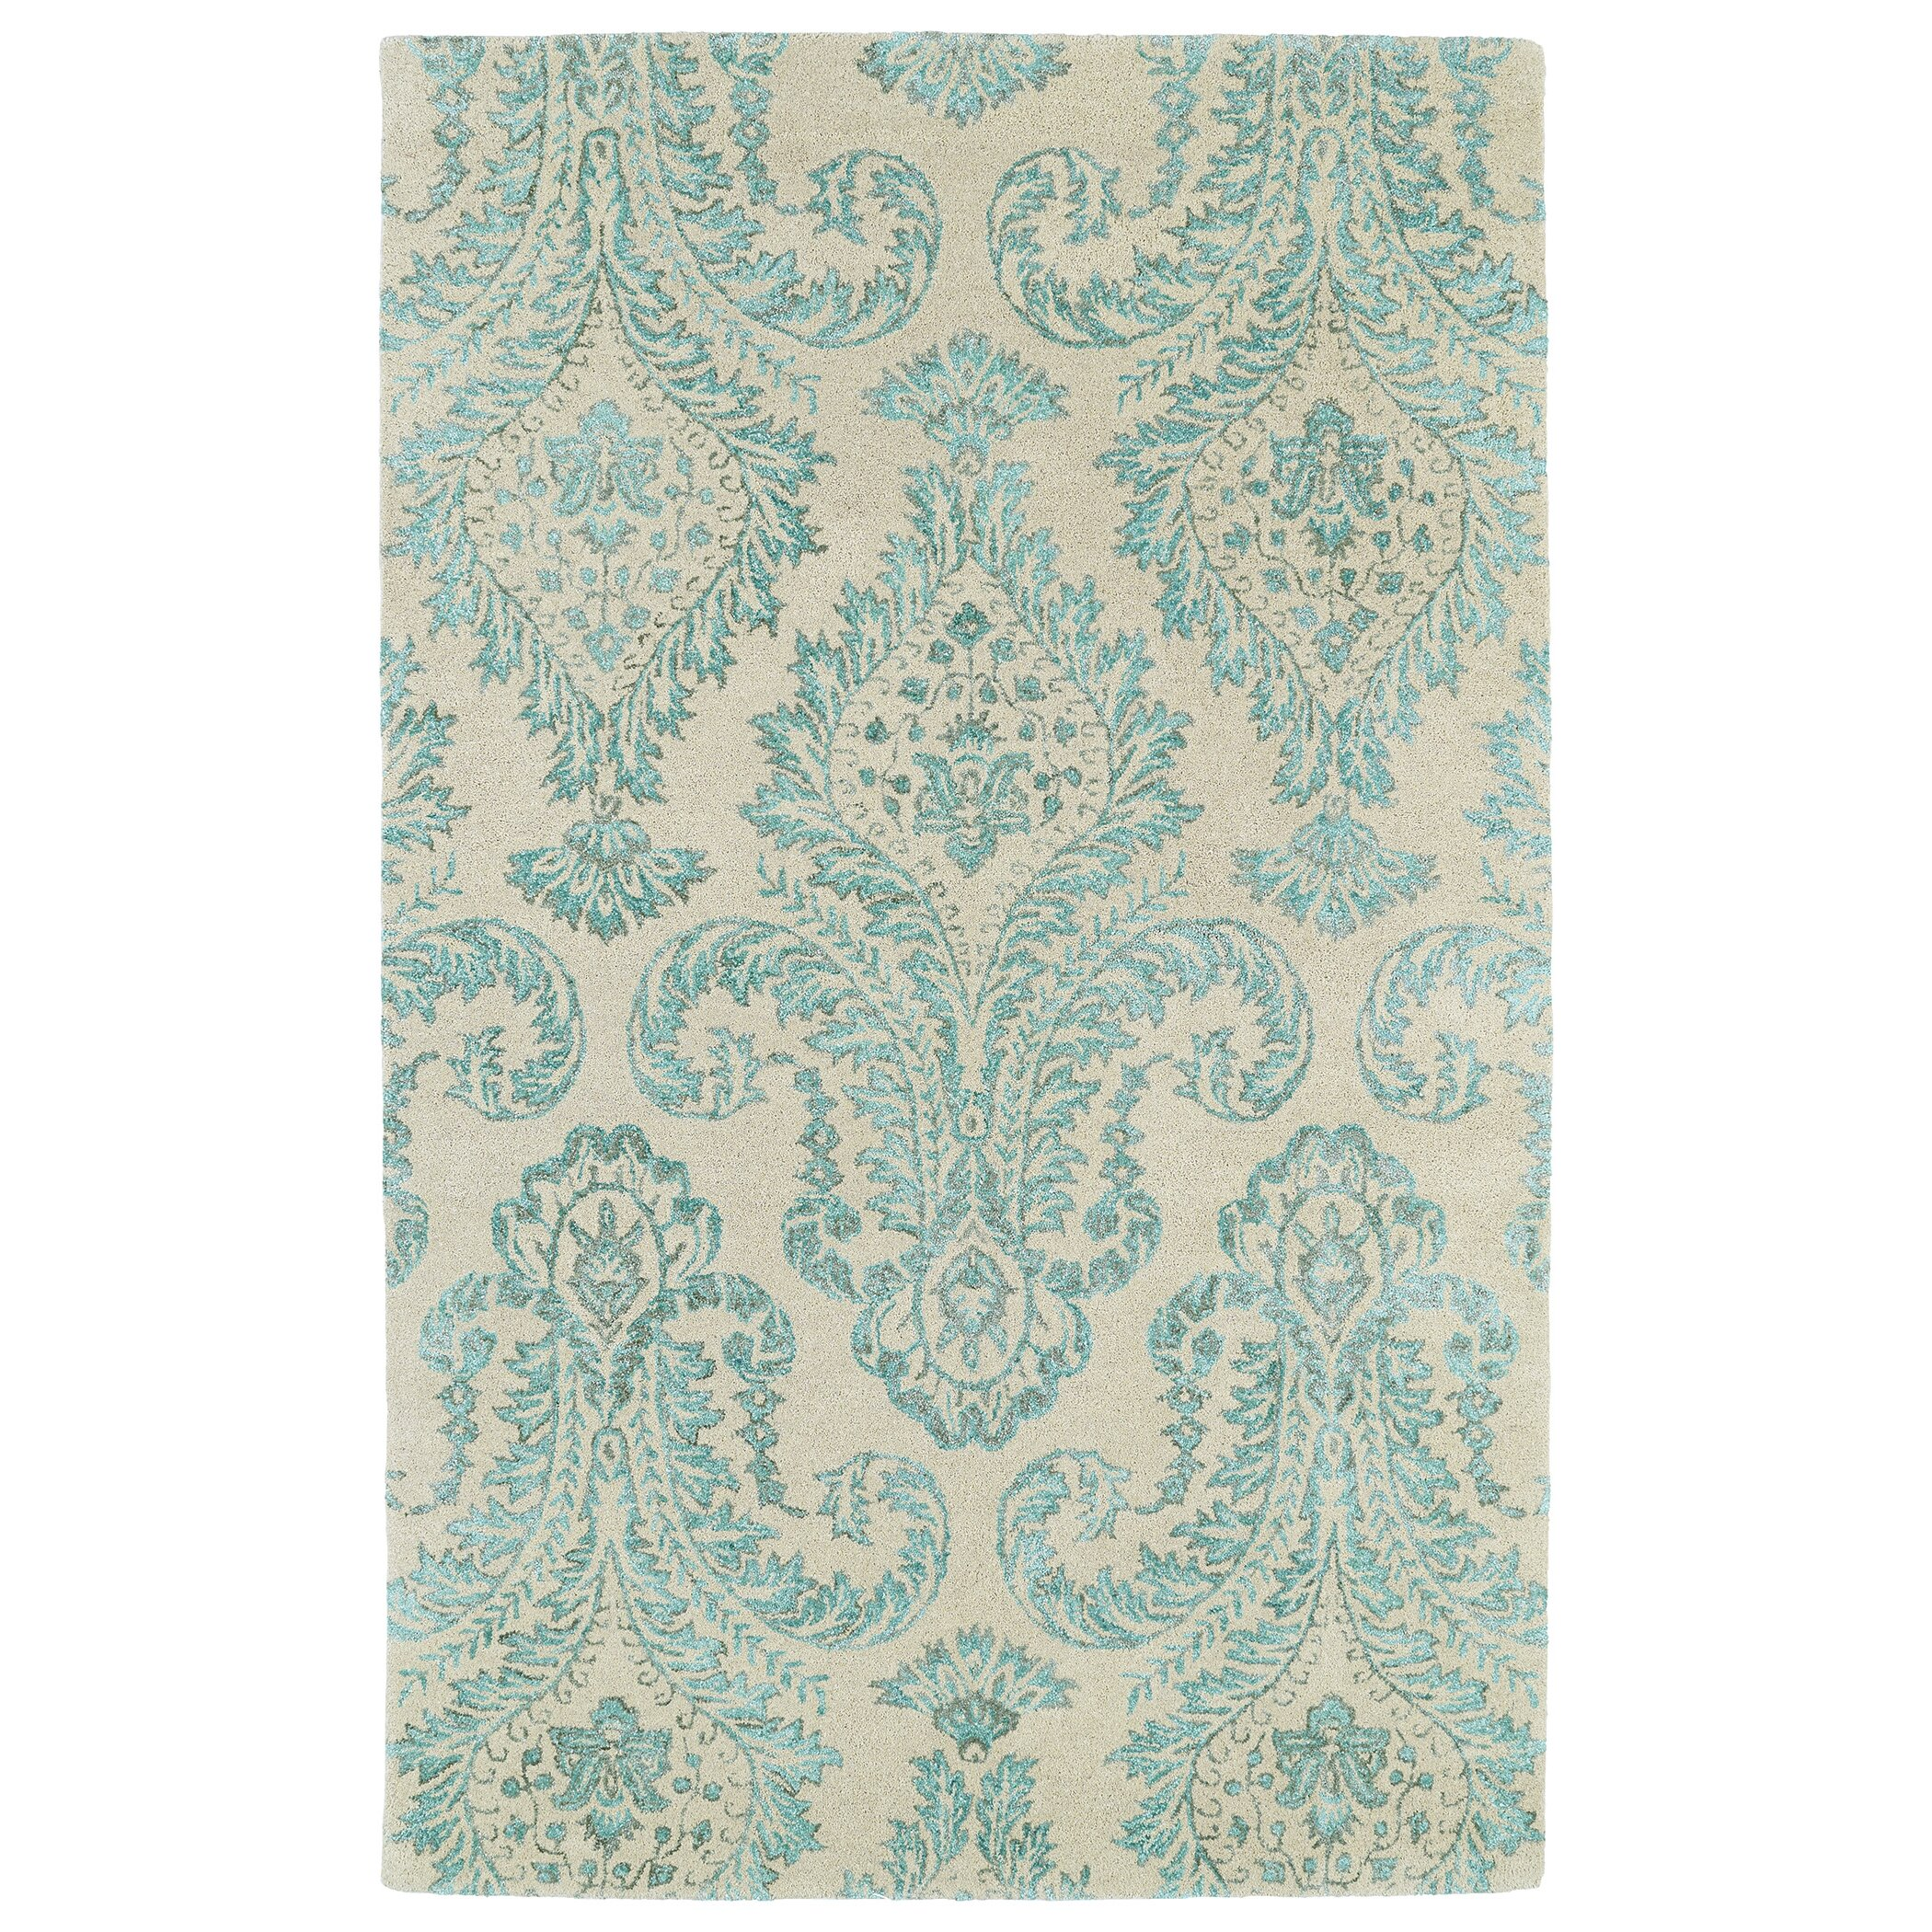 Kaleen Helena Turquoise Area Rug Reviews: Kaleen Divine Beige/Turquoise Area Rug & Reviews